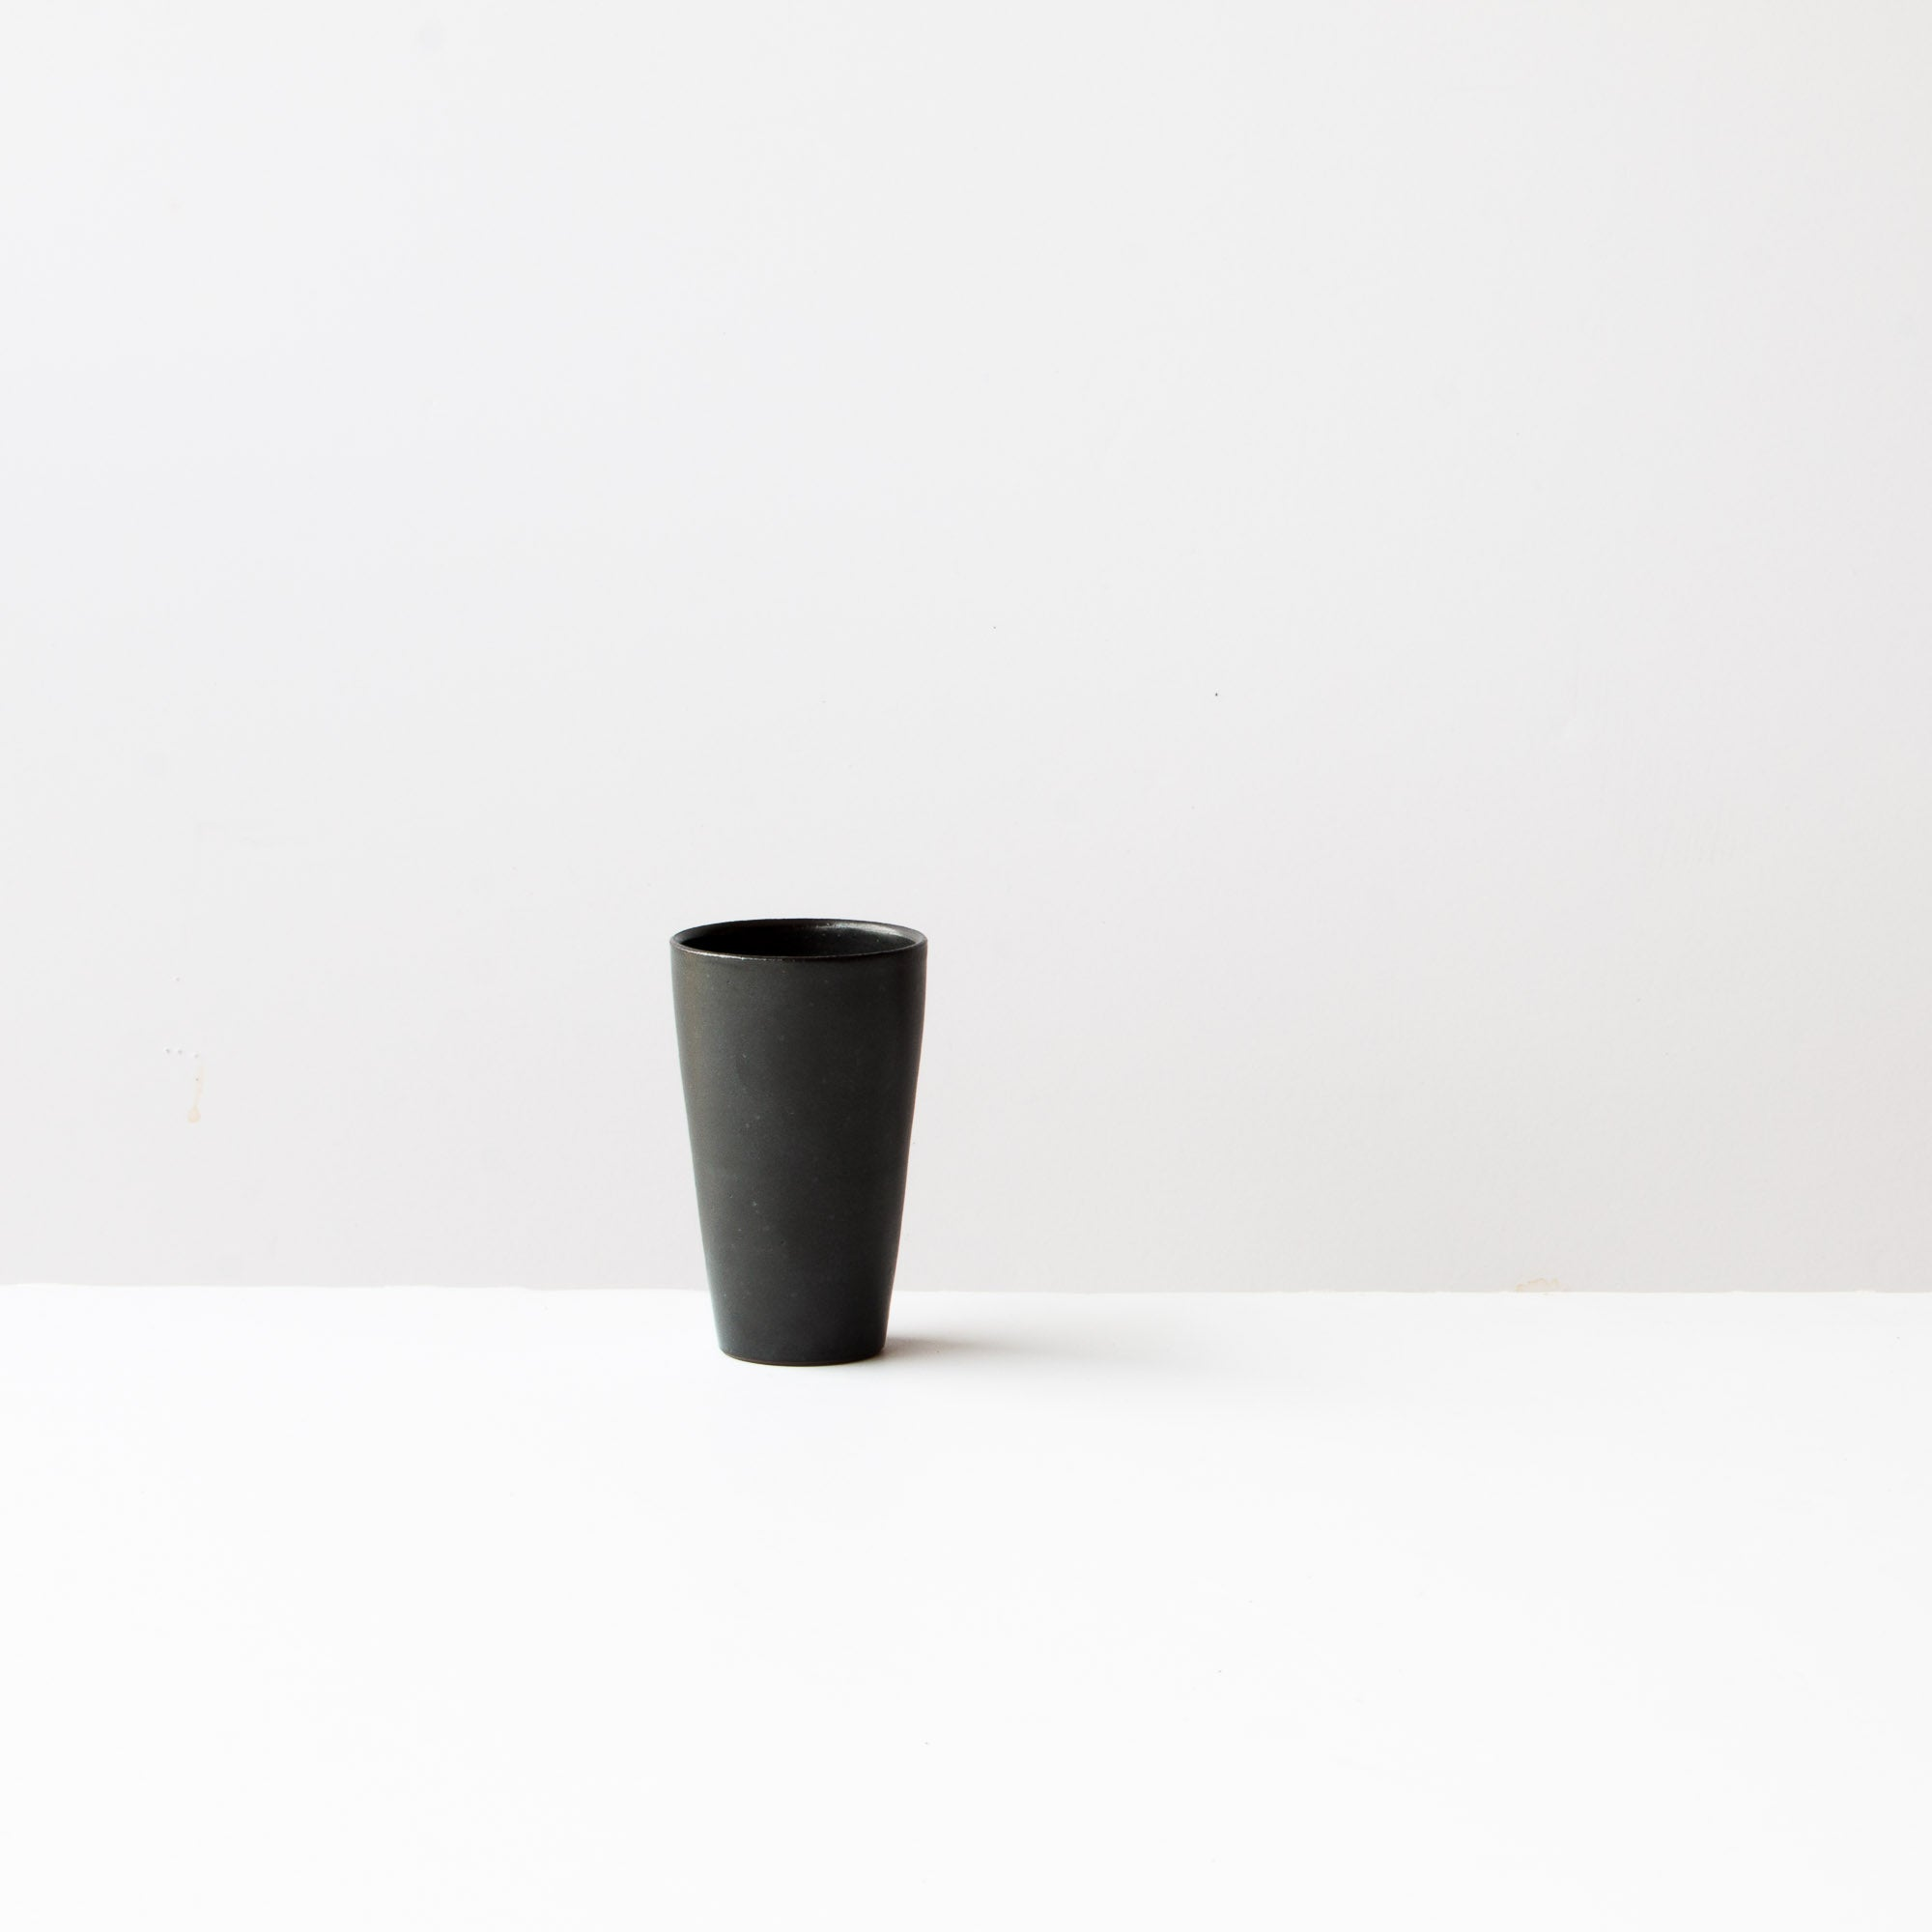 Black Handmade Small Ceramic Goblet / Tumbler - Sold by Chic & Basta